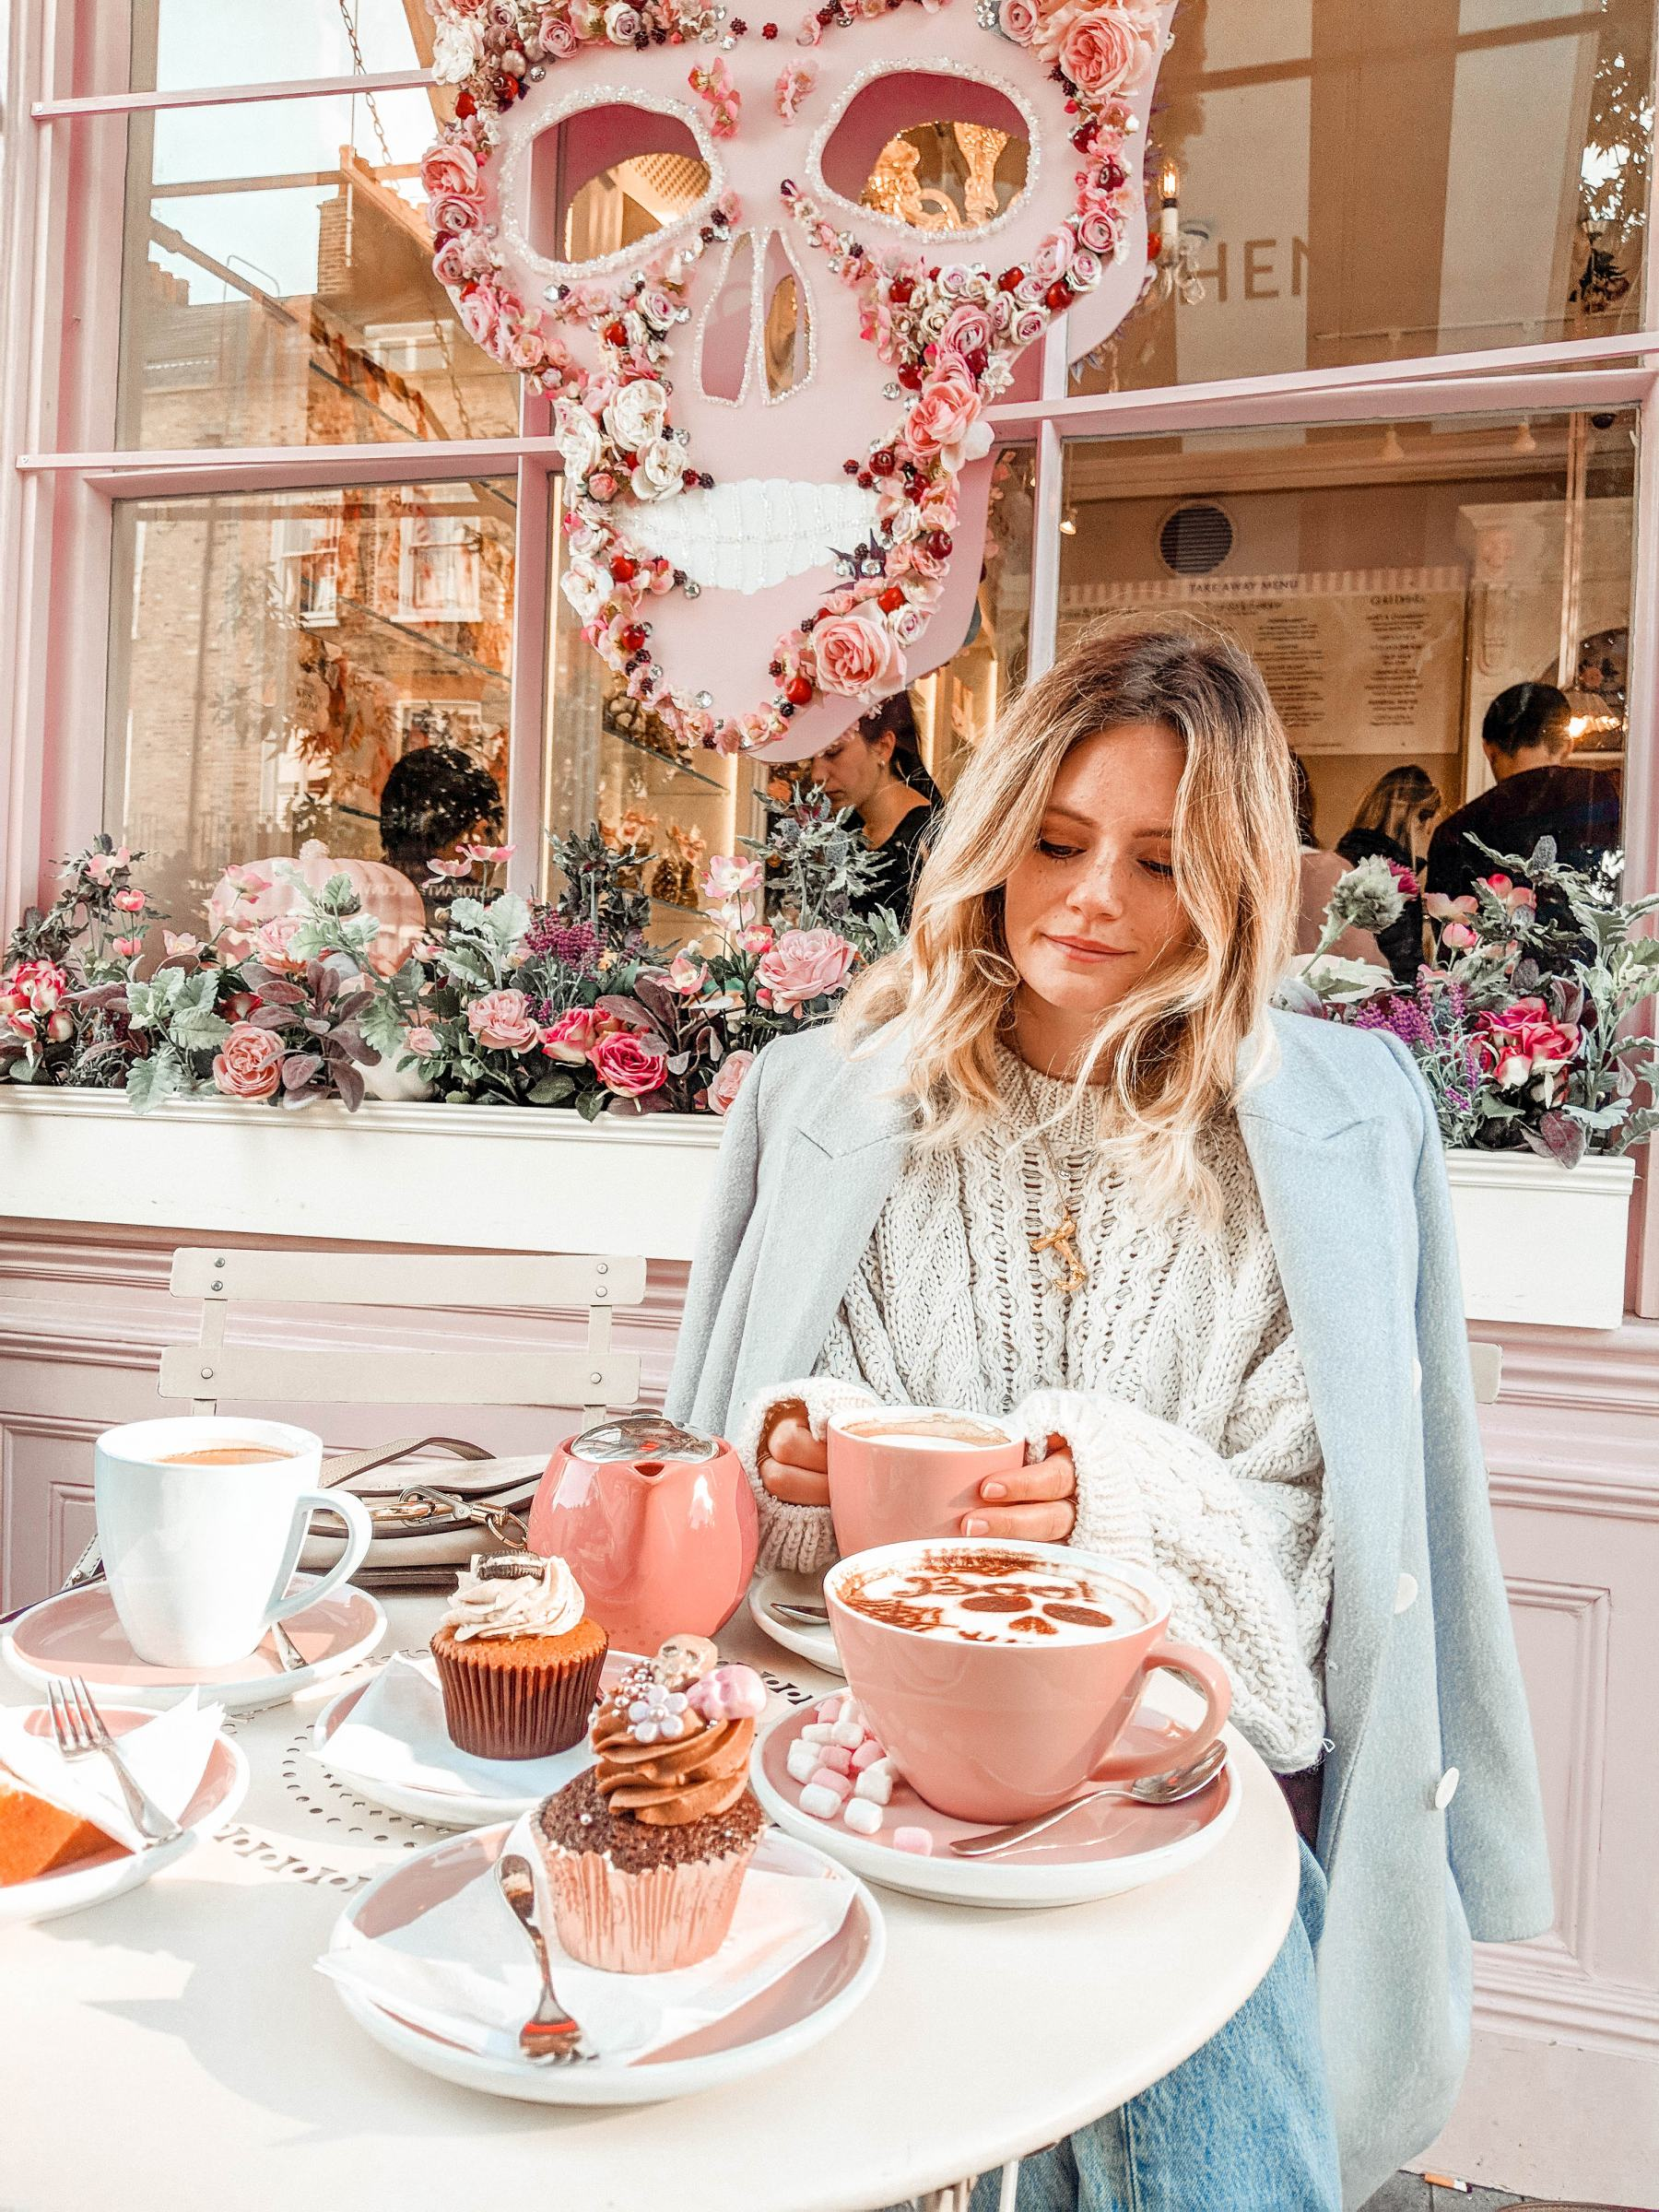 instagram guide london most instagrammable eccleston yards flower wall flowers jesschamilton instagram peggy porschen